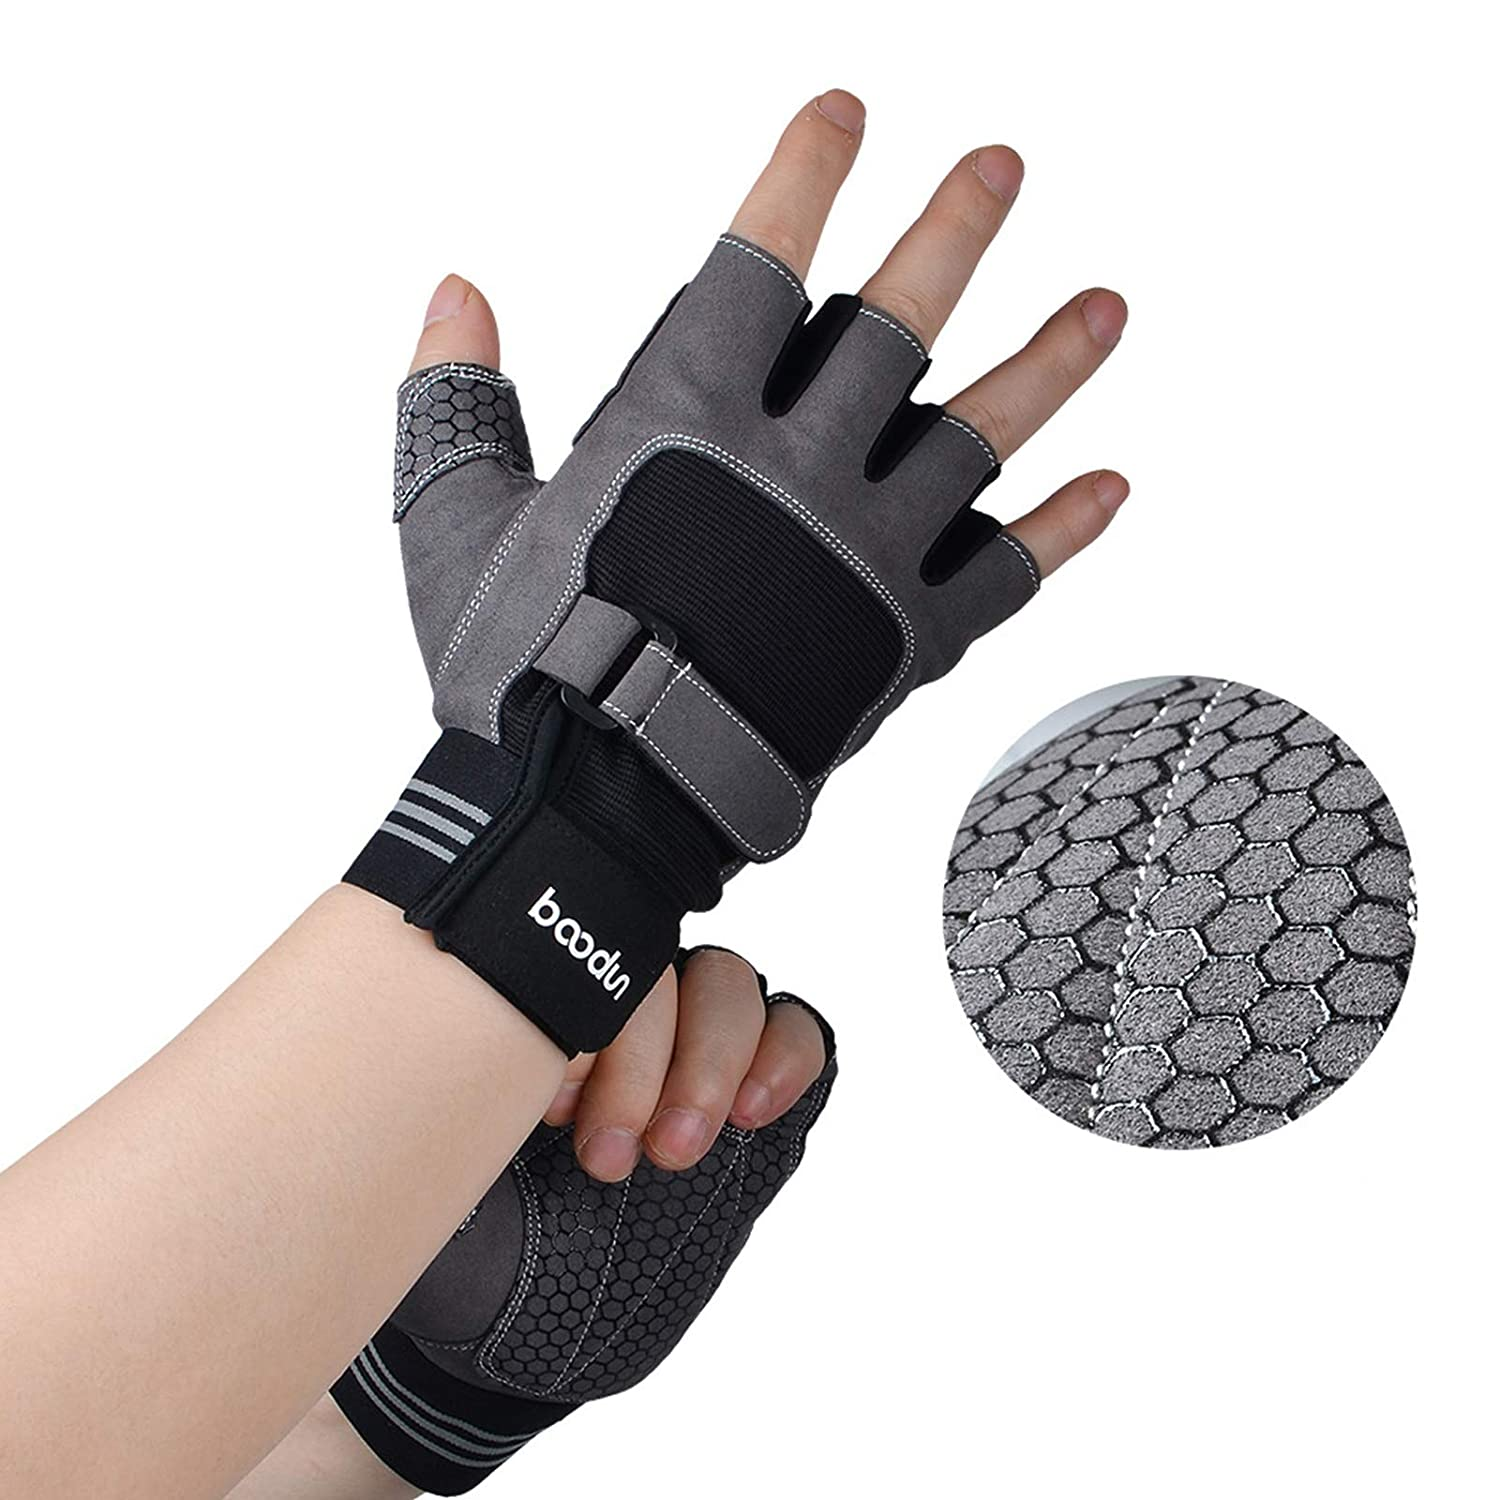 Aokarry Gloves Cycling Motocycle Gloves Microfiber Exercise Training Workout Fitness Gloves Fingerless Grey